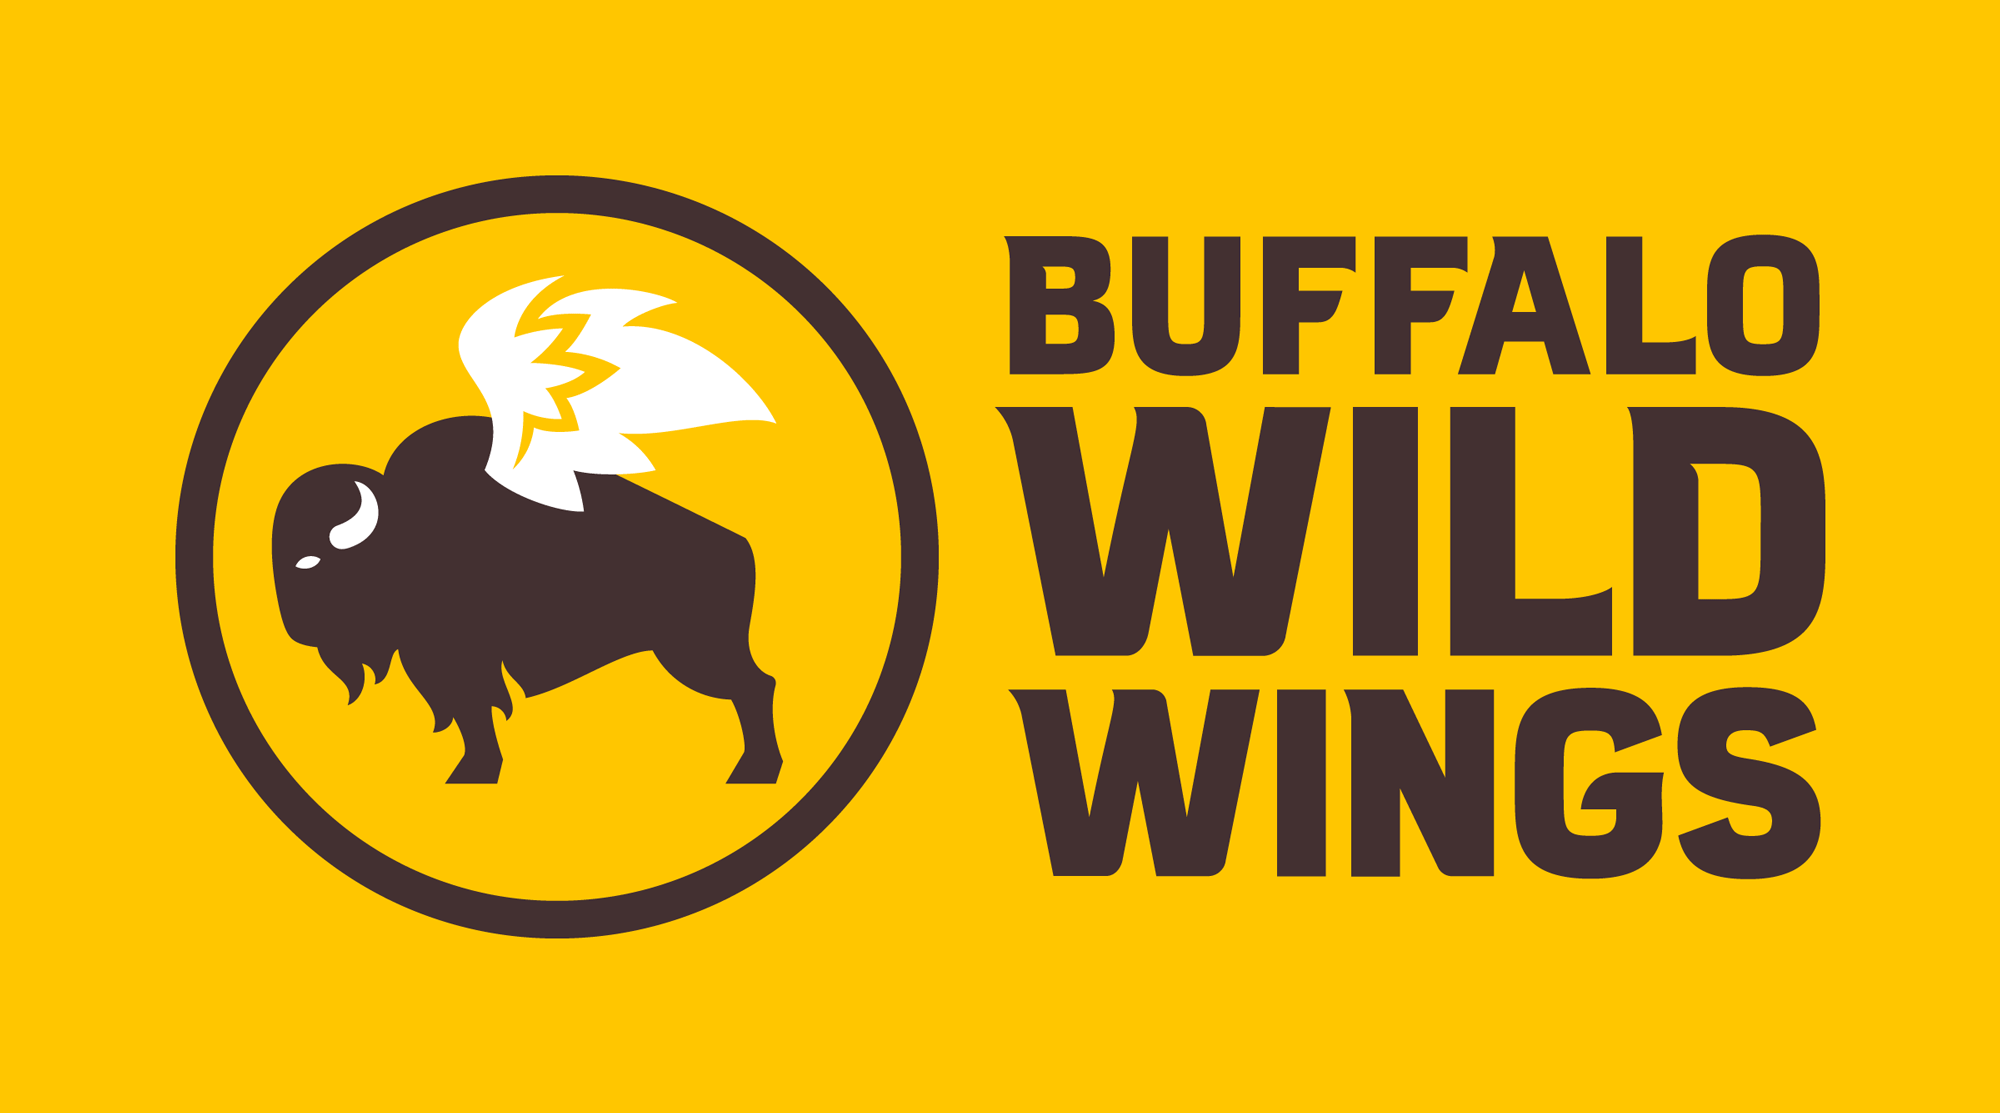 Walsh's Wing Review: Buffalo Wild Wings